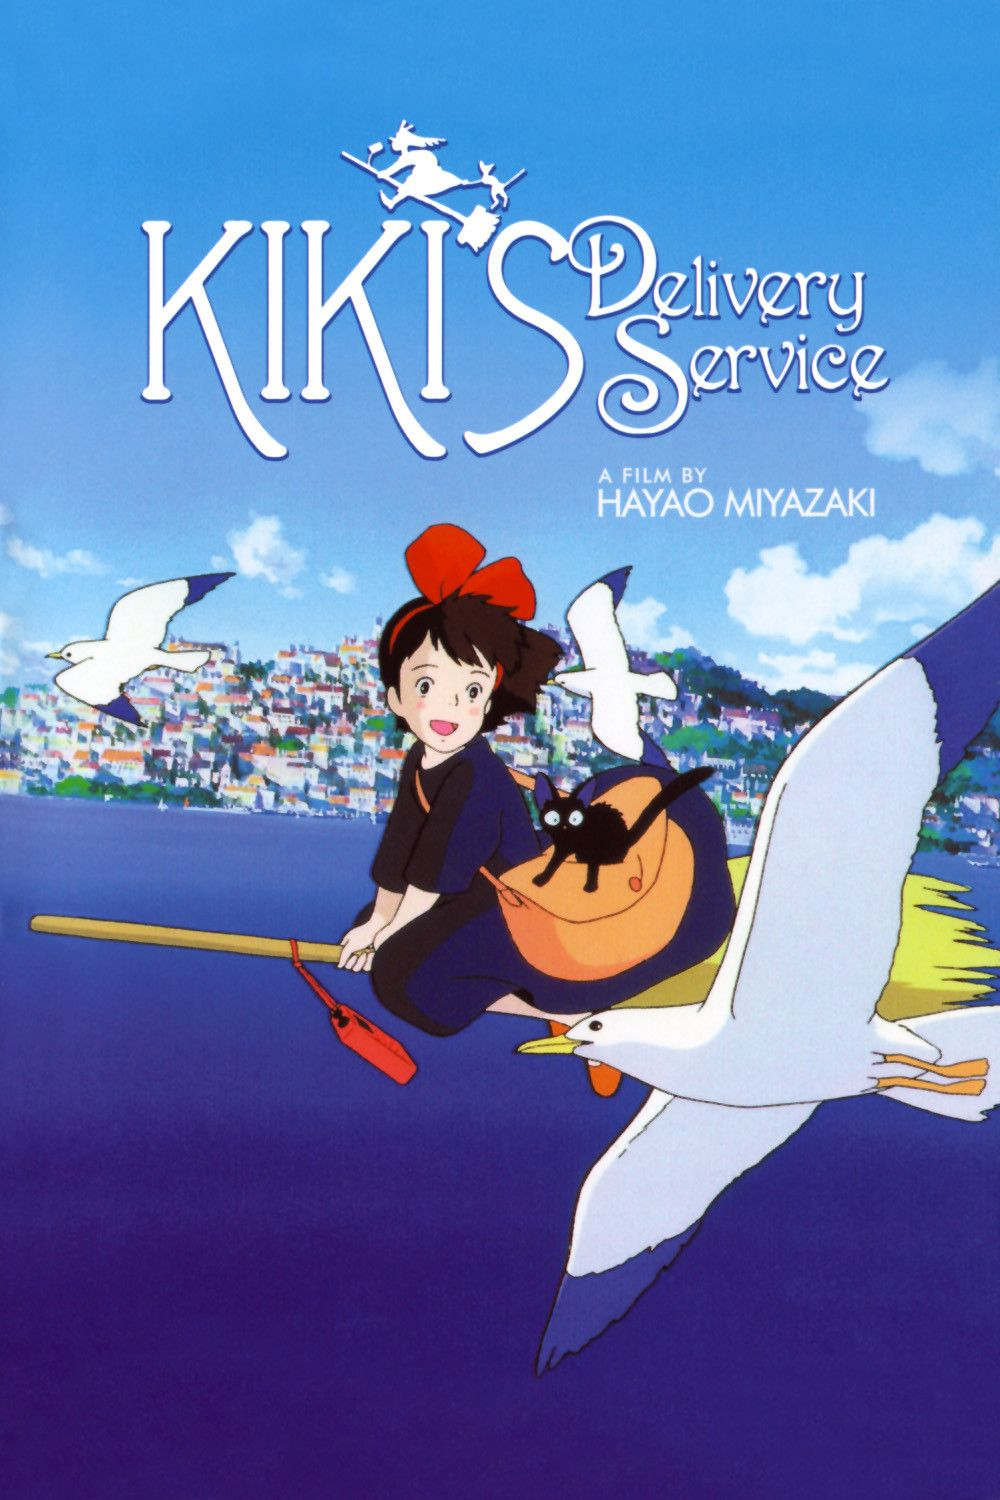 kikis-delivery-service-poster.jpg